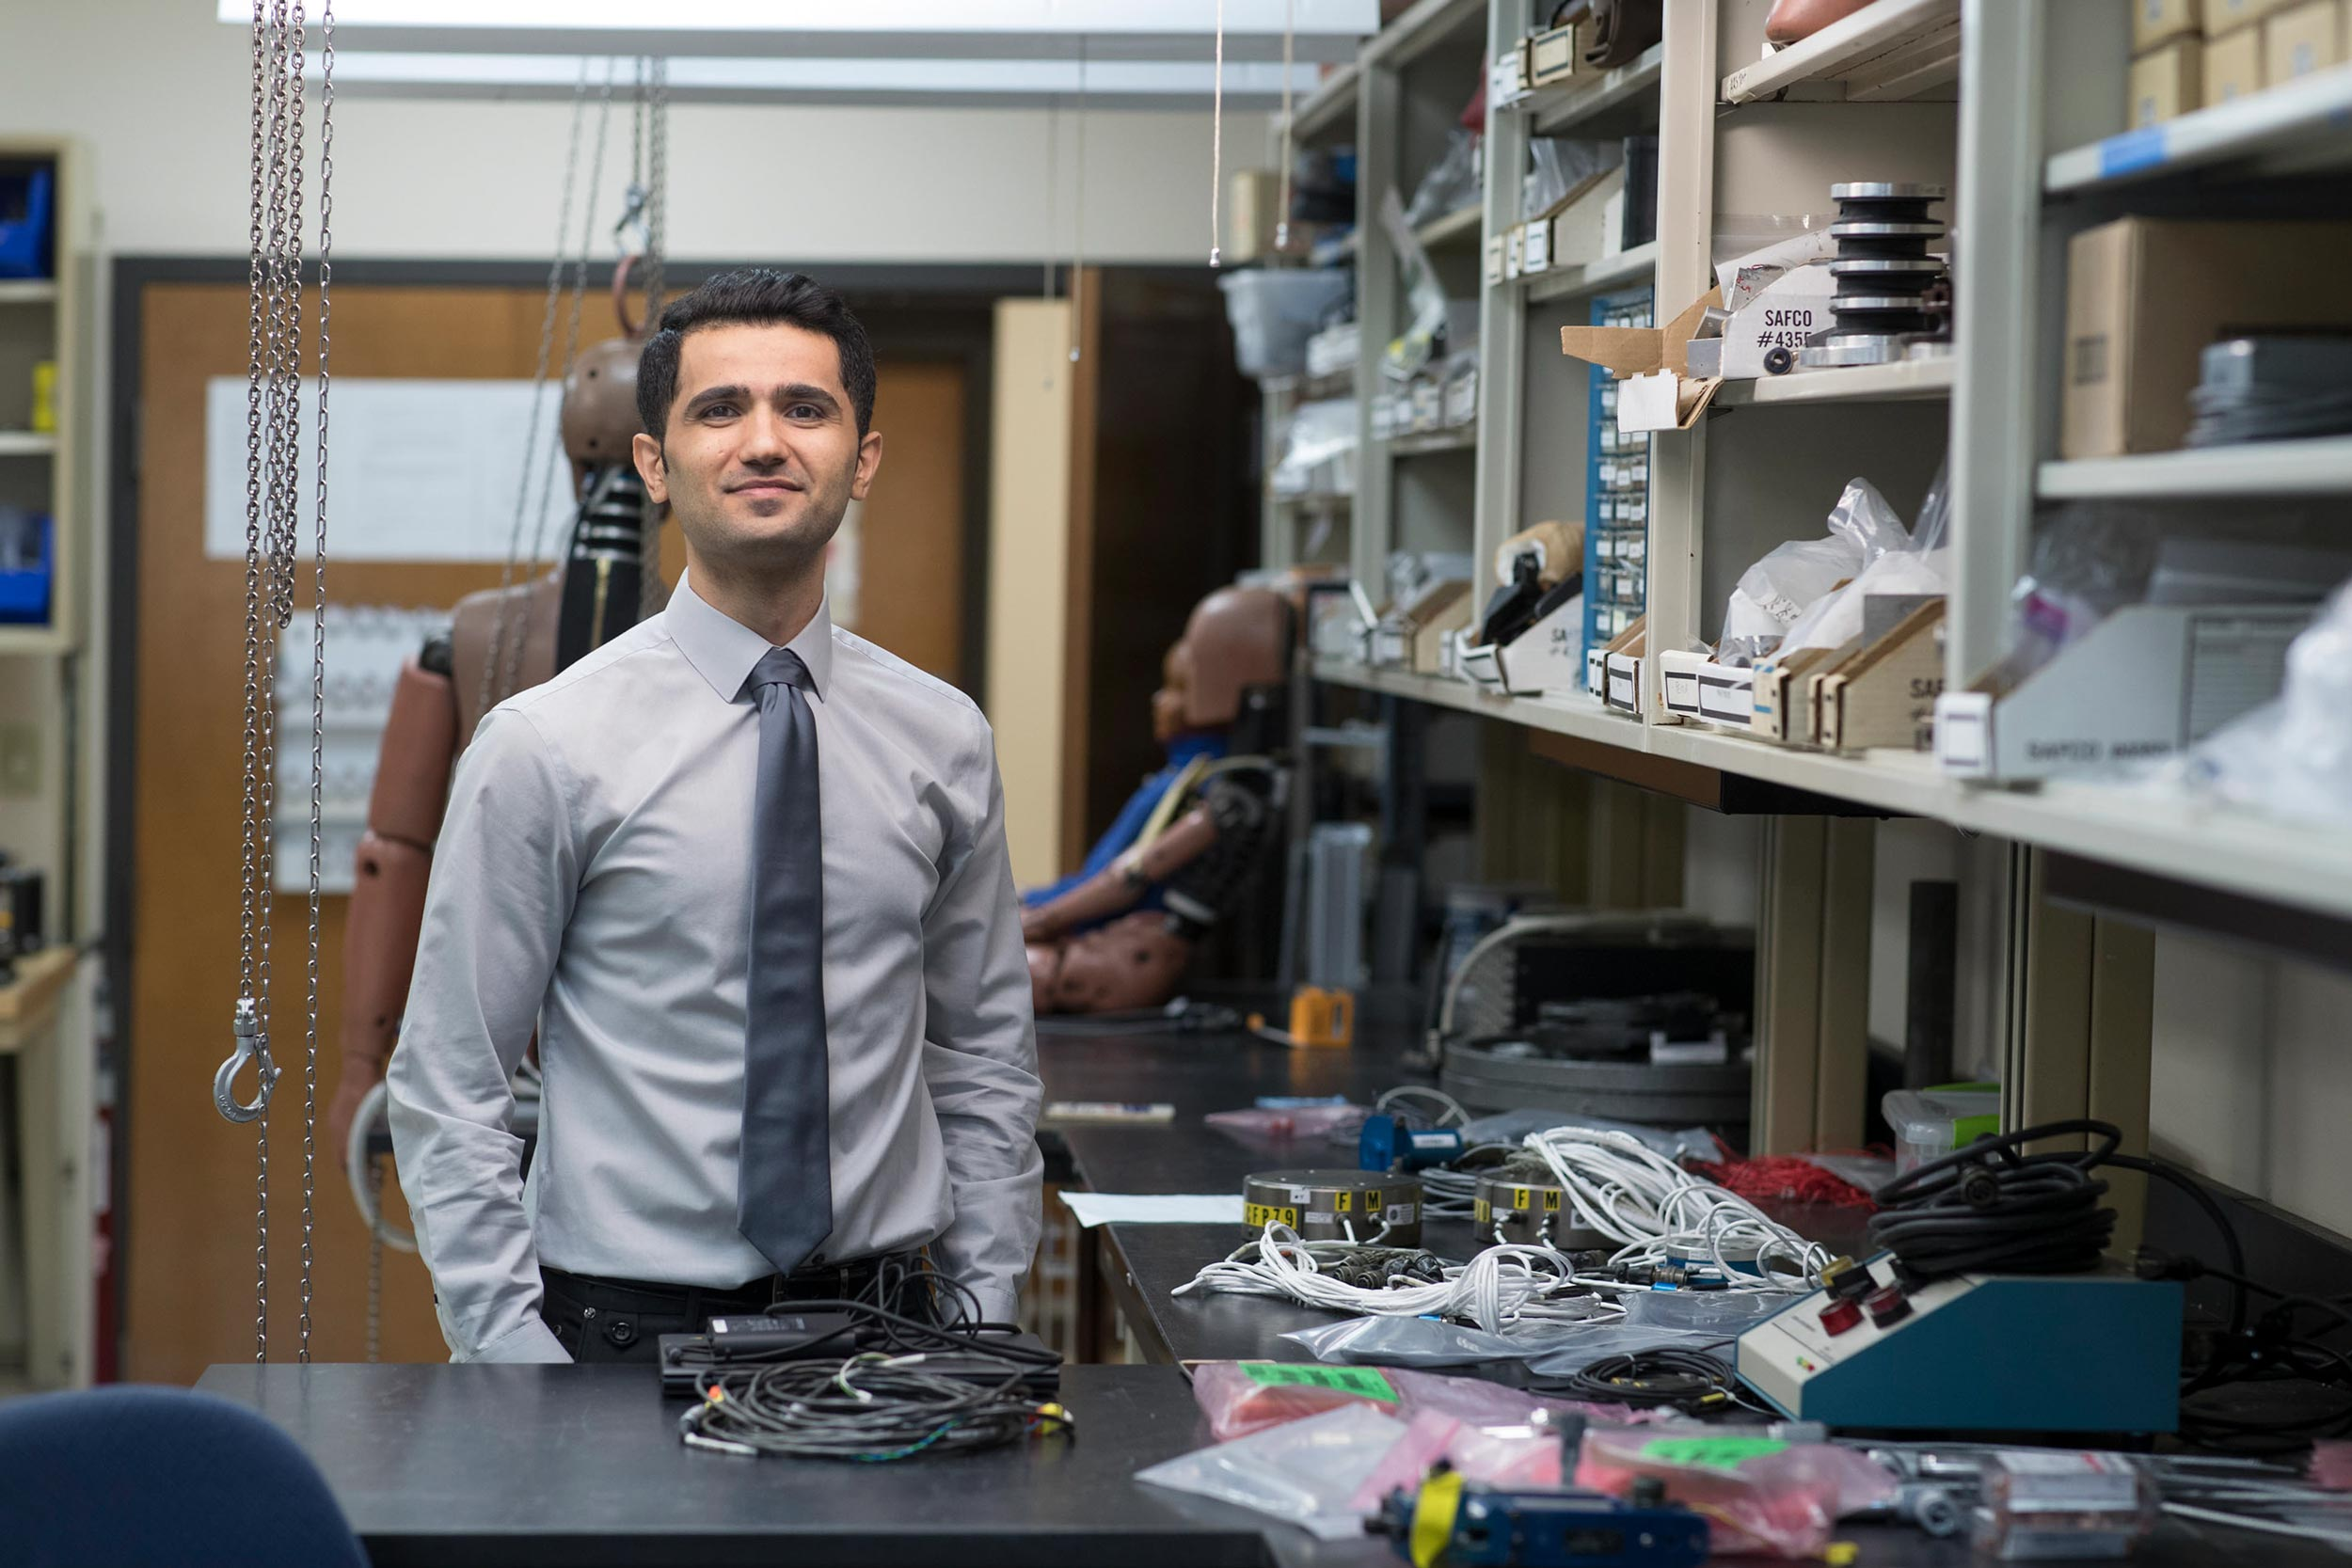 Hamed Joodaki expects to complete his Ph.D. project by the end of this year.